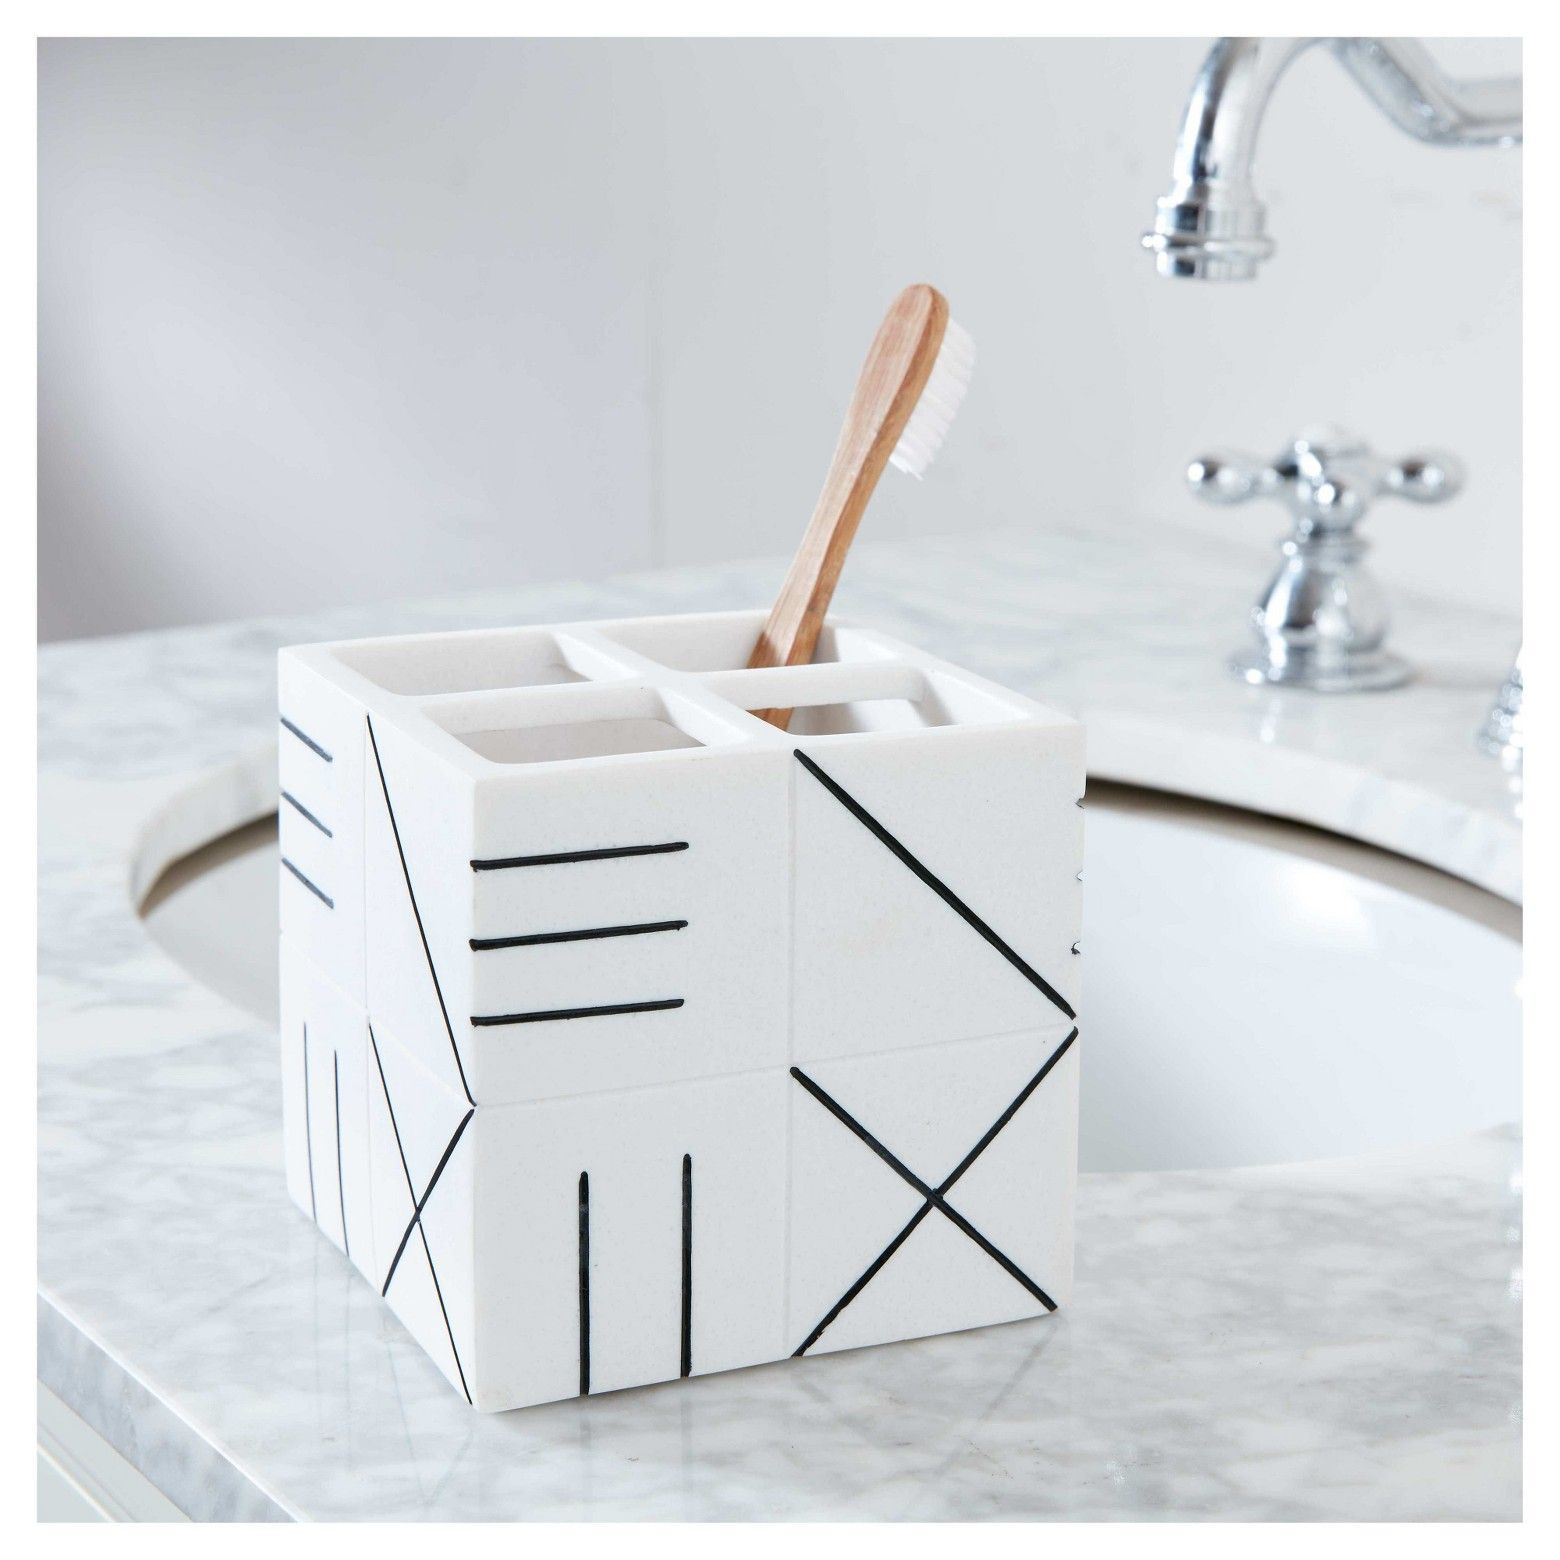 Bring function and style to your bathroom with this Nate Berkus Tiled Toothbrush Holder. The geometric line work and tiled pattern of this piece provides a nice modern accent to your bathroom